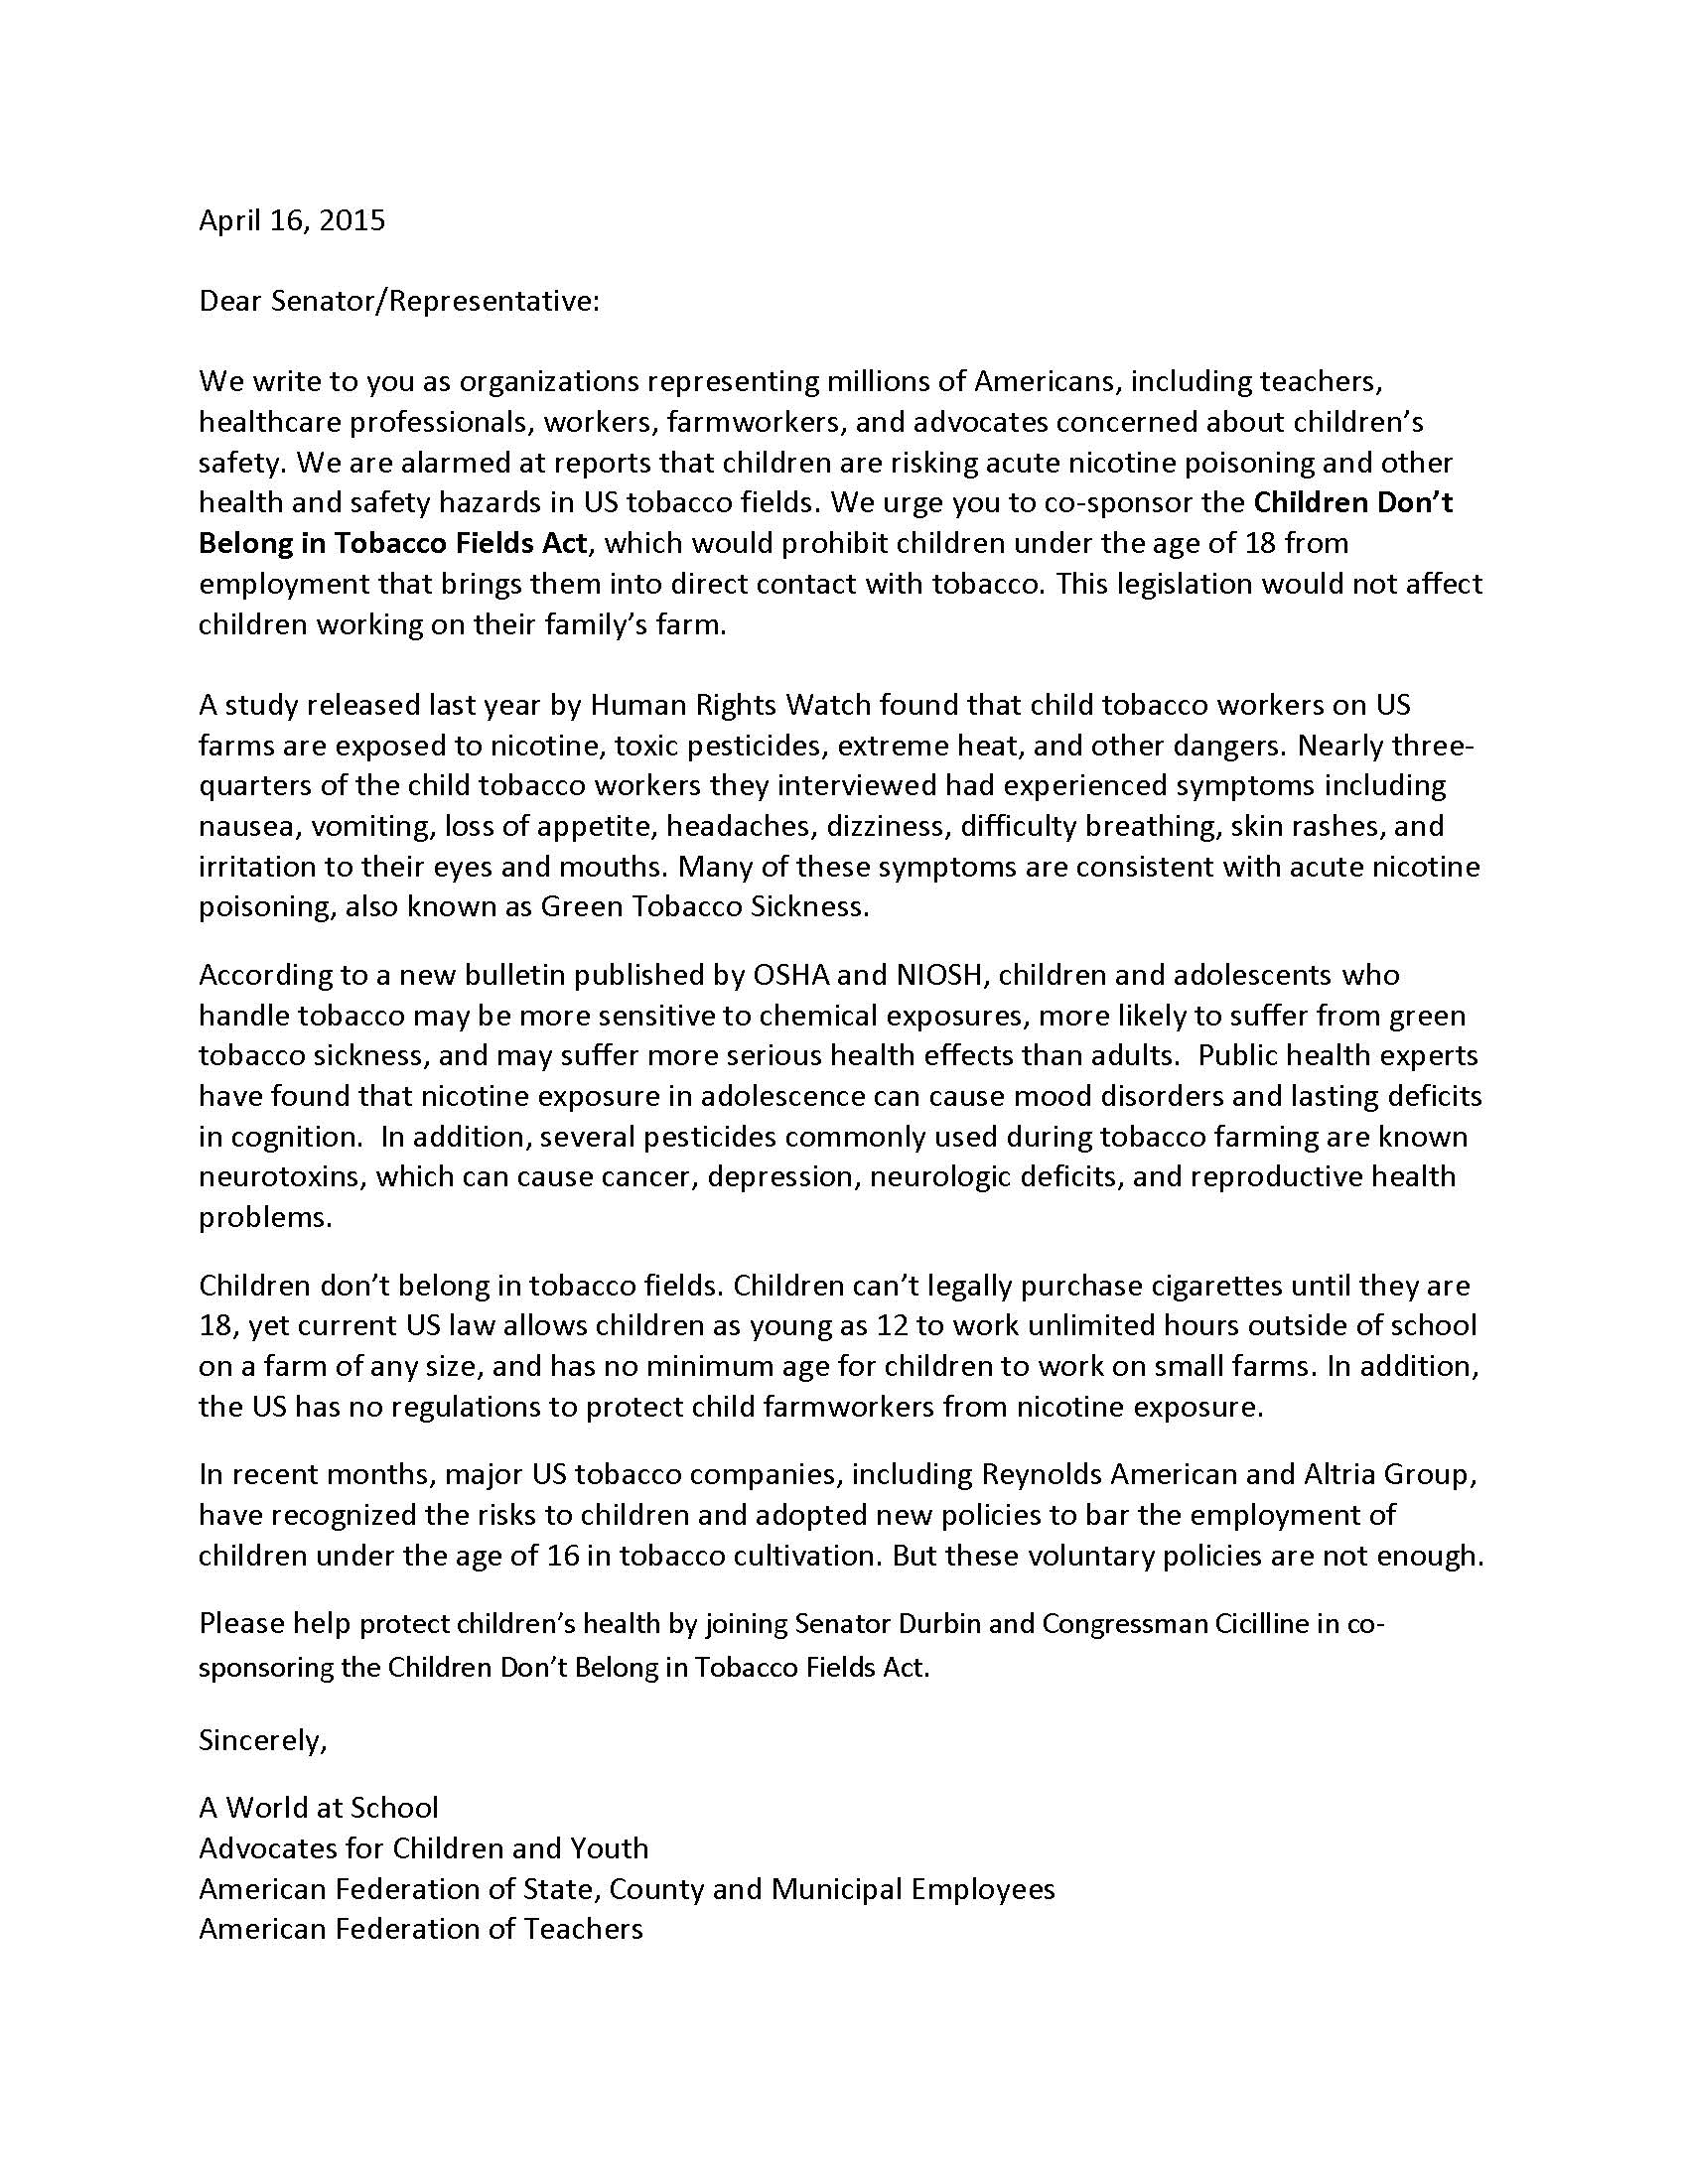 NGO letter supporting Children Don't Belong on Tobacco Farms Act_Page_1